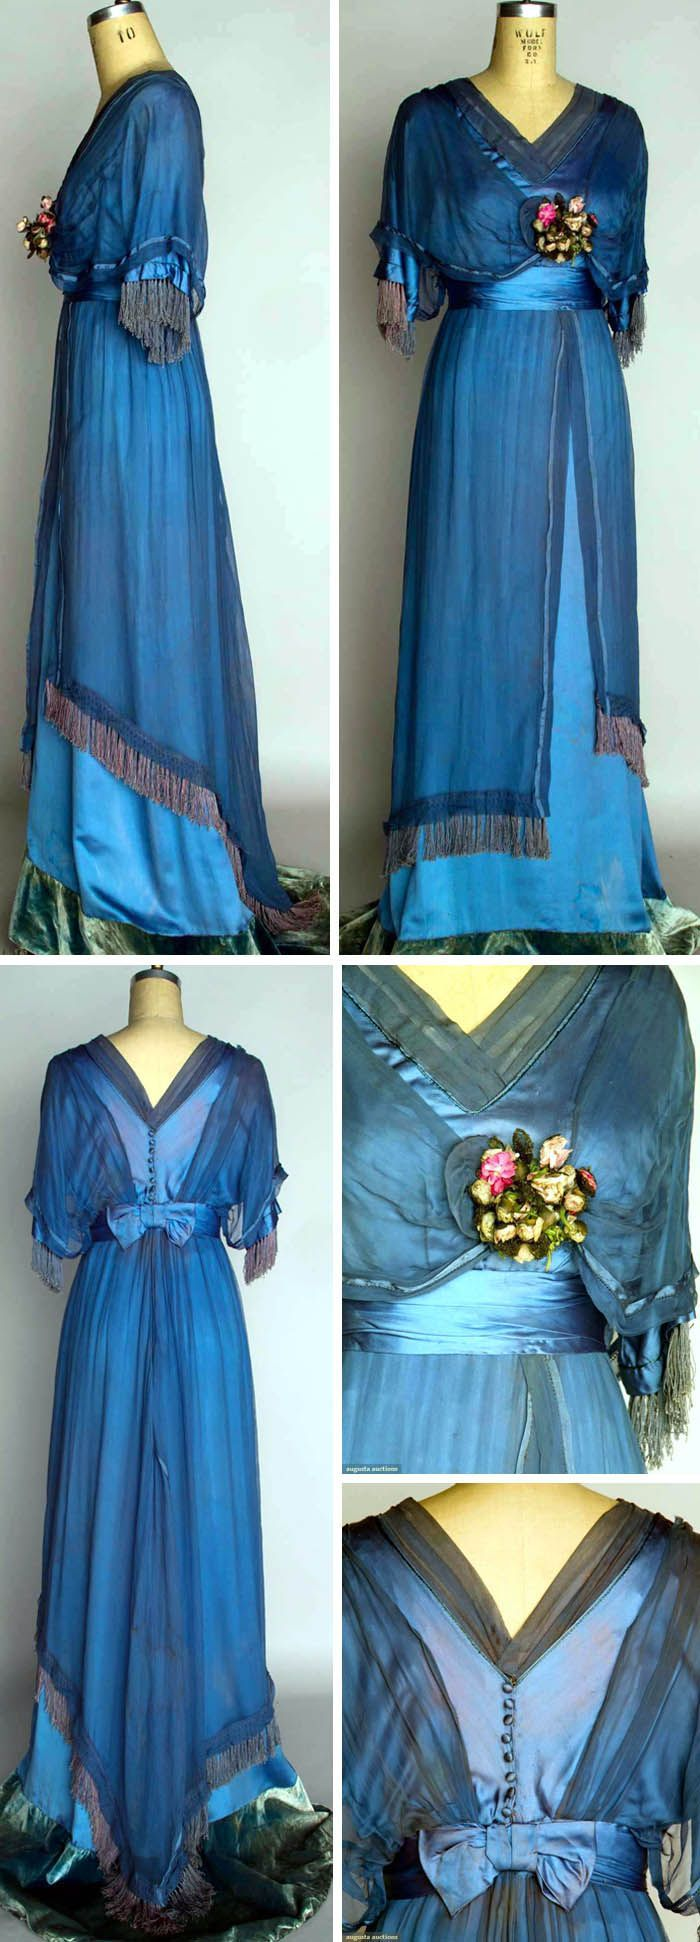 1900-1919 dress. Beautiful blue. Looks like something Sybil of Downton Abbey would wear. The flowers are a bit odd for our day's taste, but without them would be nice.